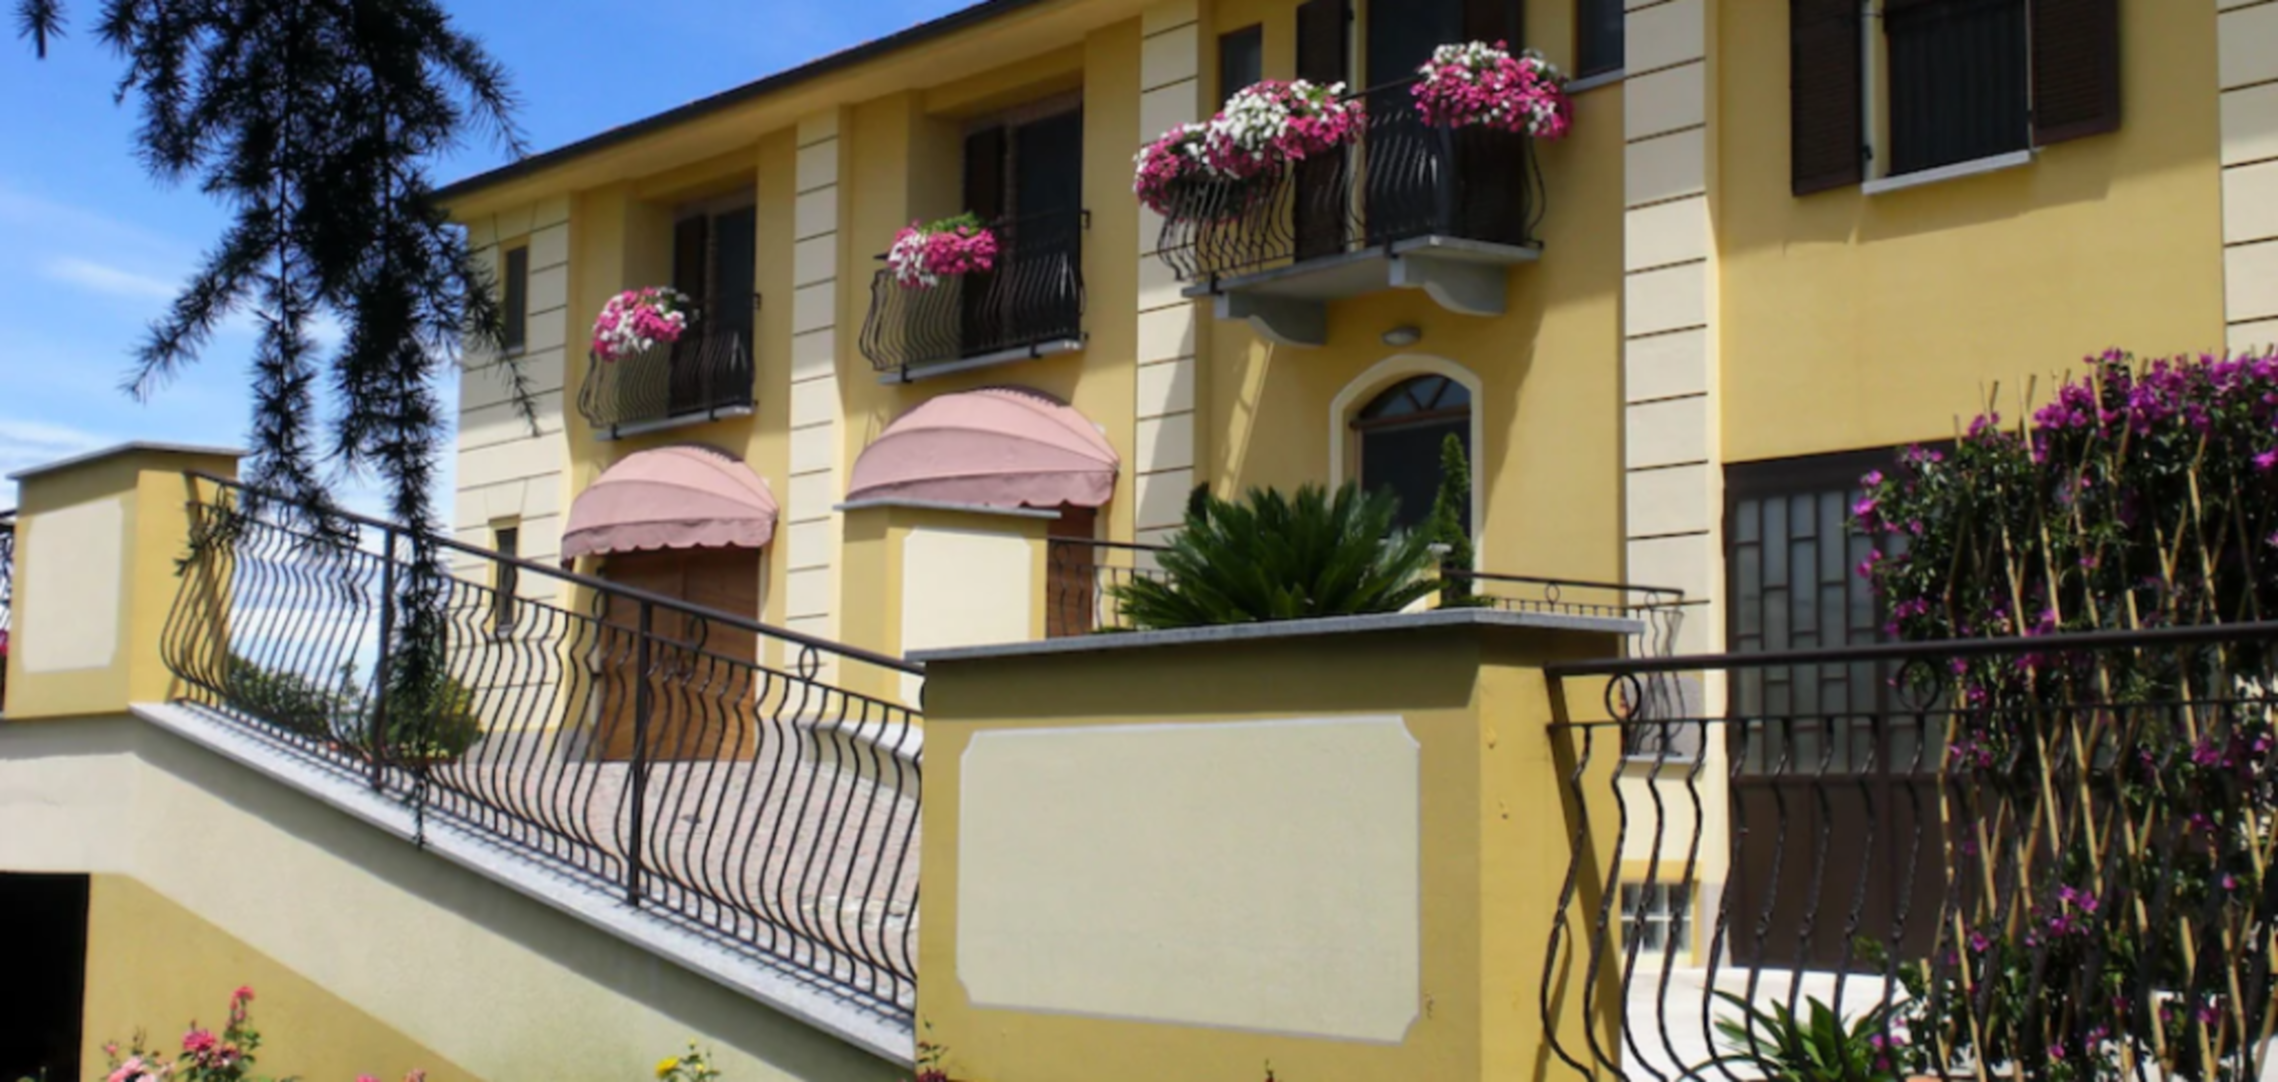 A dining table in front of a building at Agriturismo Cascina Rocca.